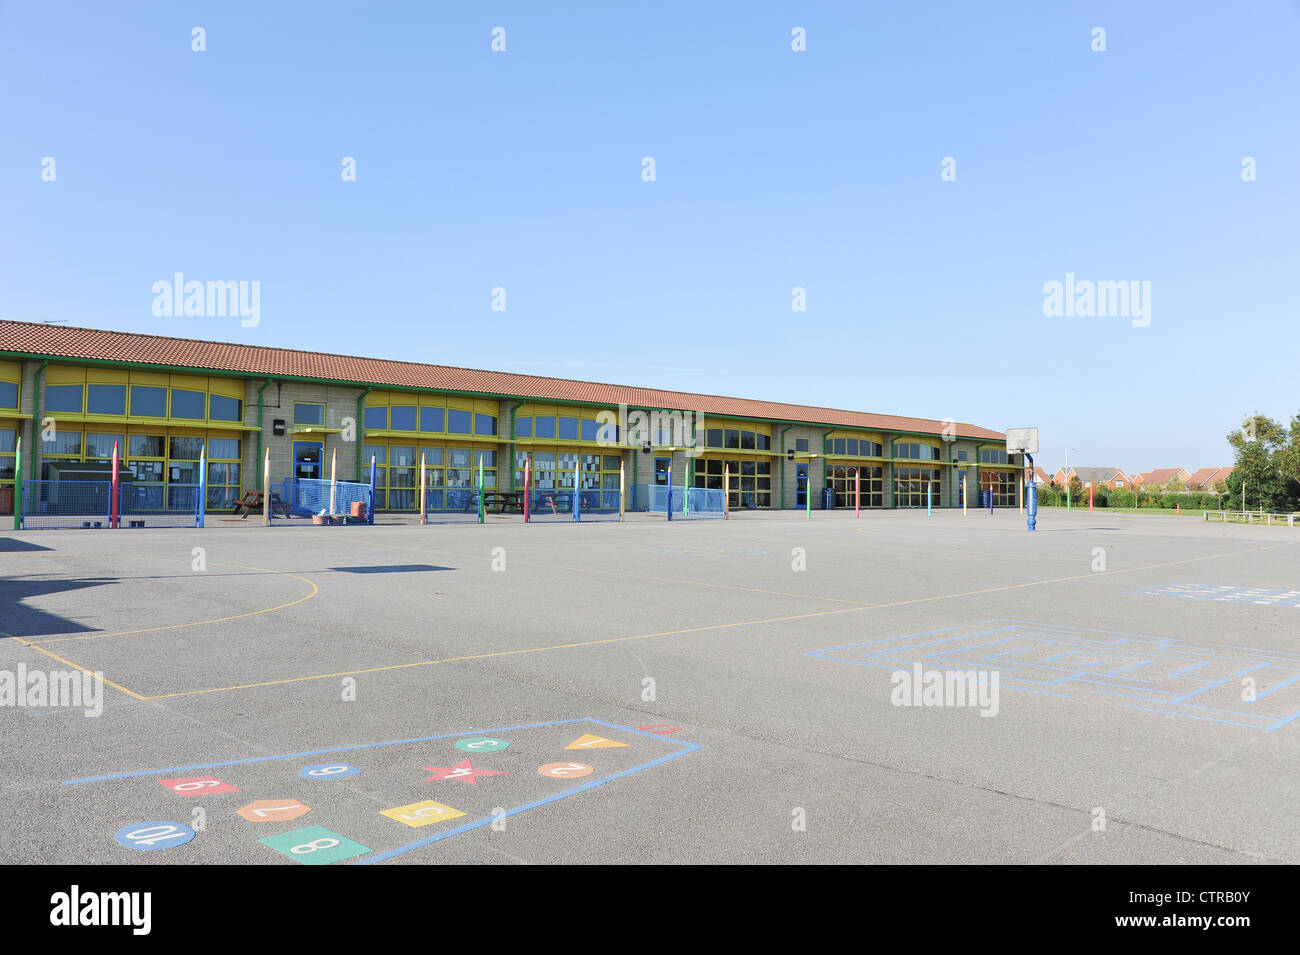 Modern school building and playground - UK infant/junior school pupils of 5-10 years - Stock Image